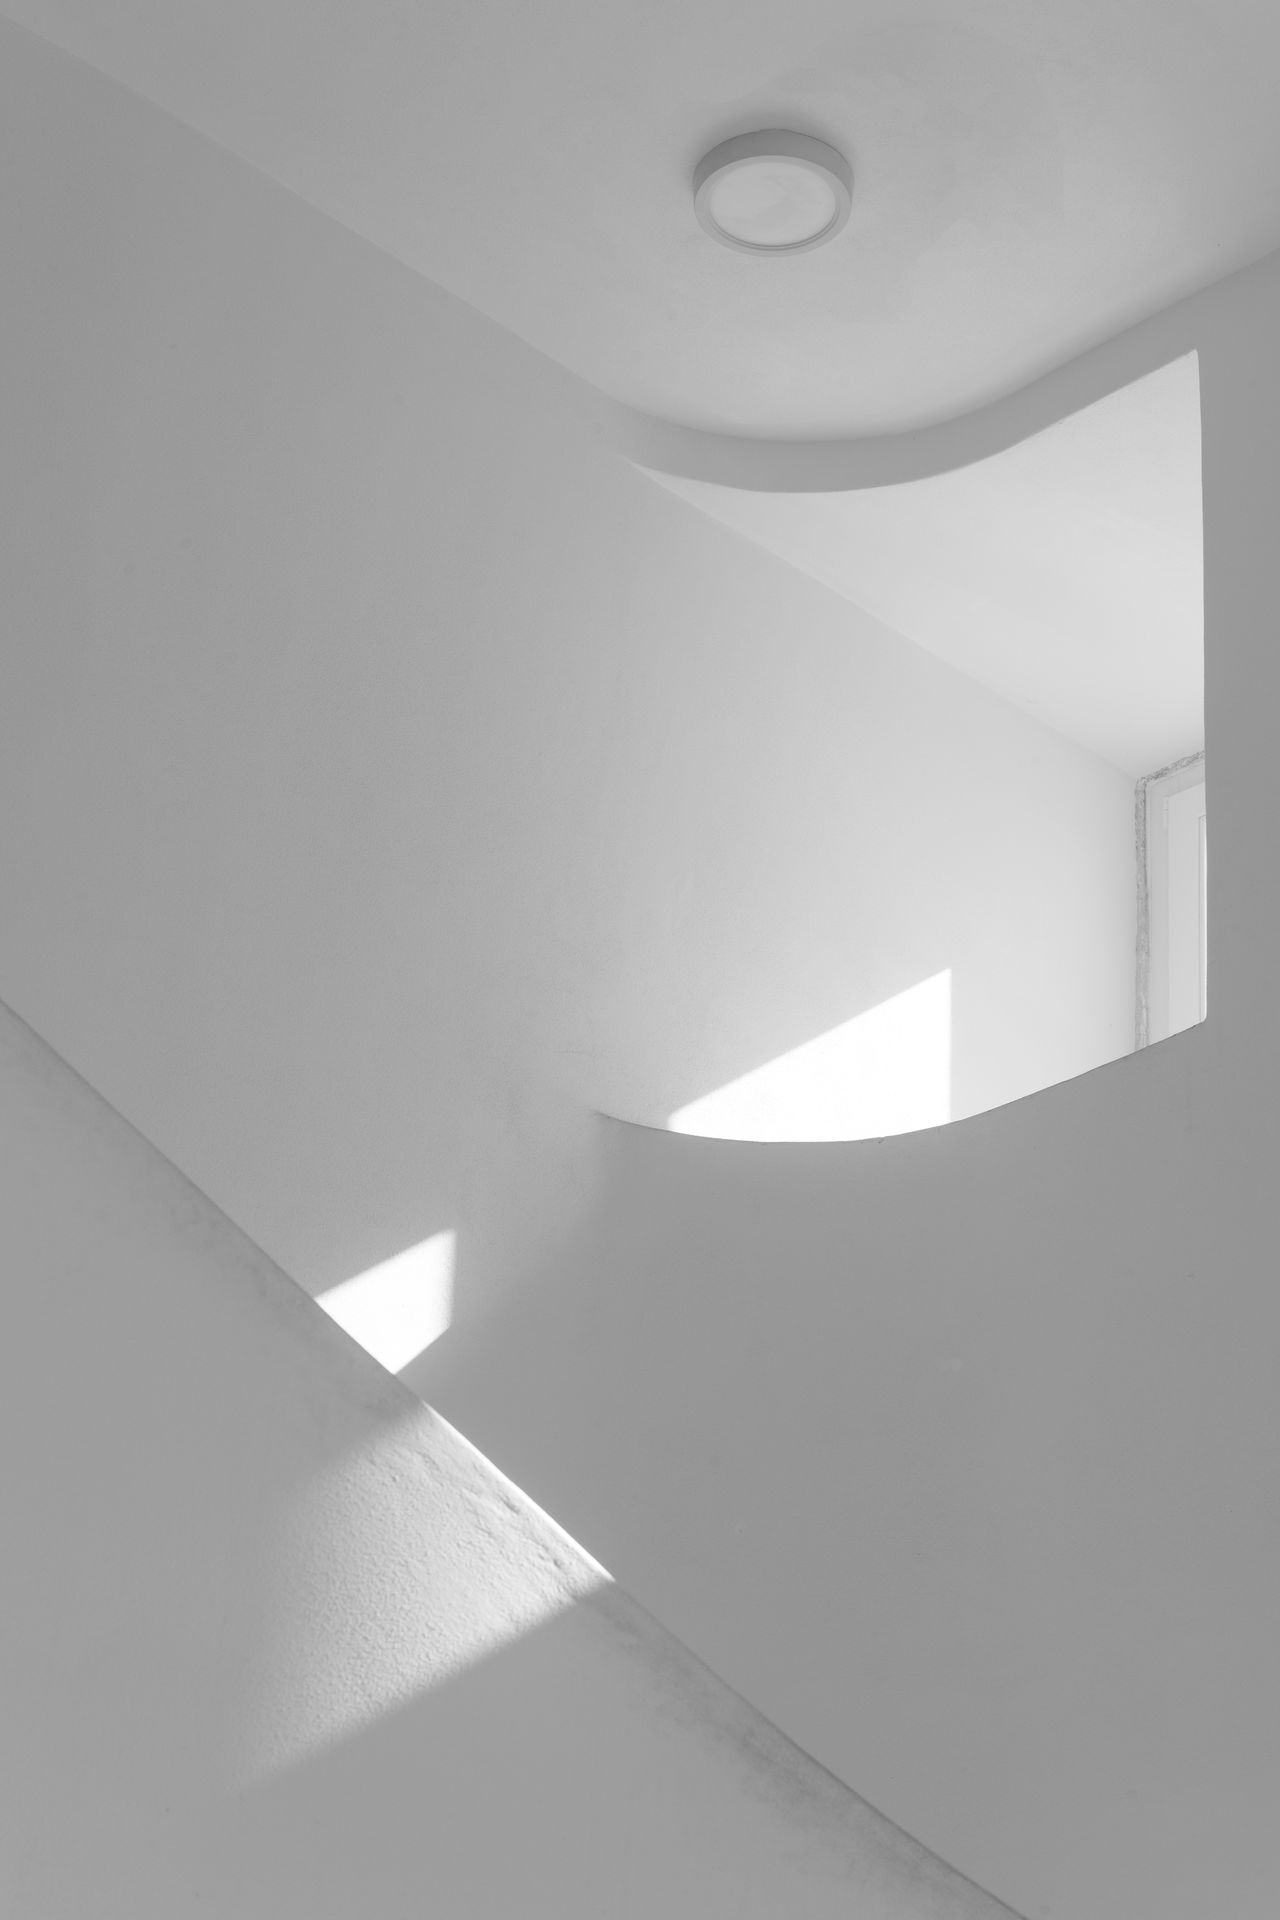 architecture, built structure, indoors, low angle view, no people